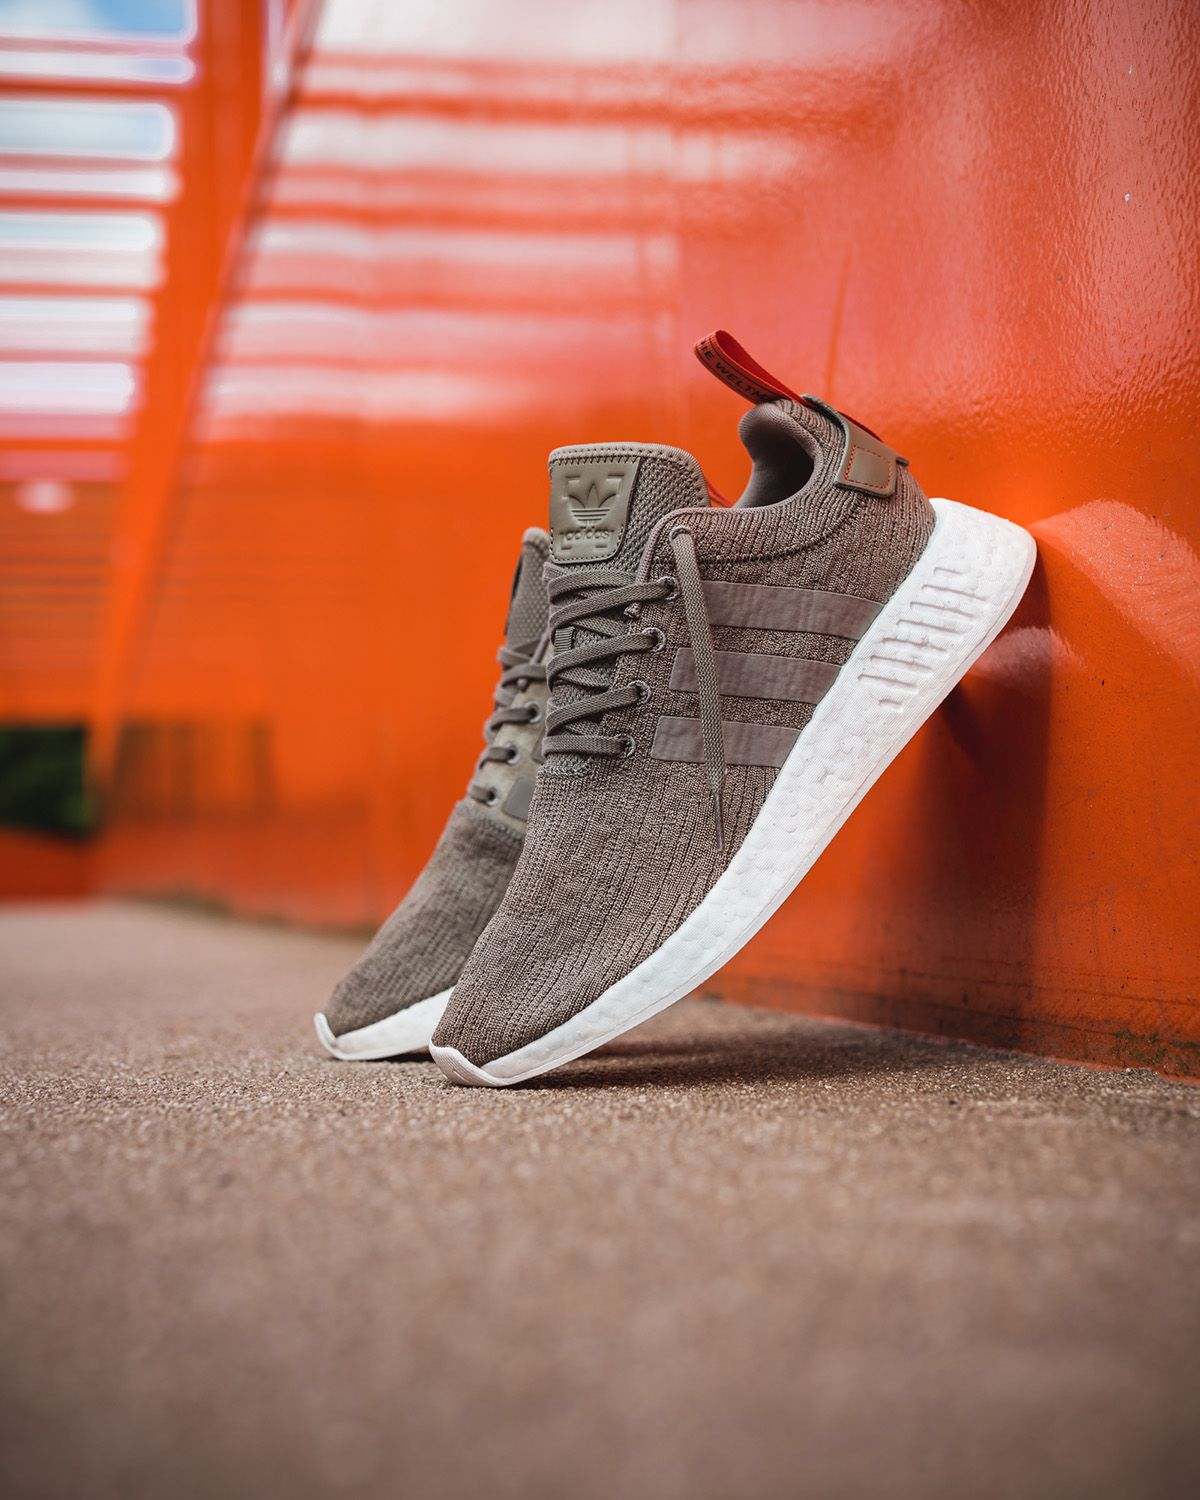 new arrival 12205 50e7d adidas NMD R2: SNIPES Exclusive | Street Sneakers | Adidas ...